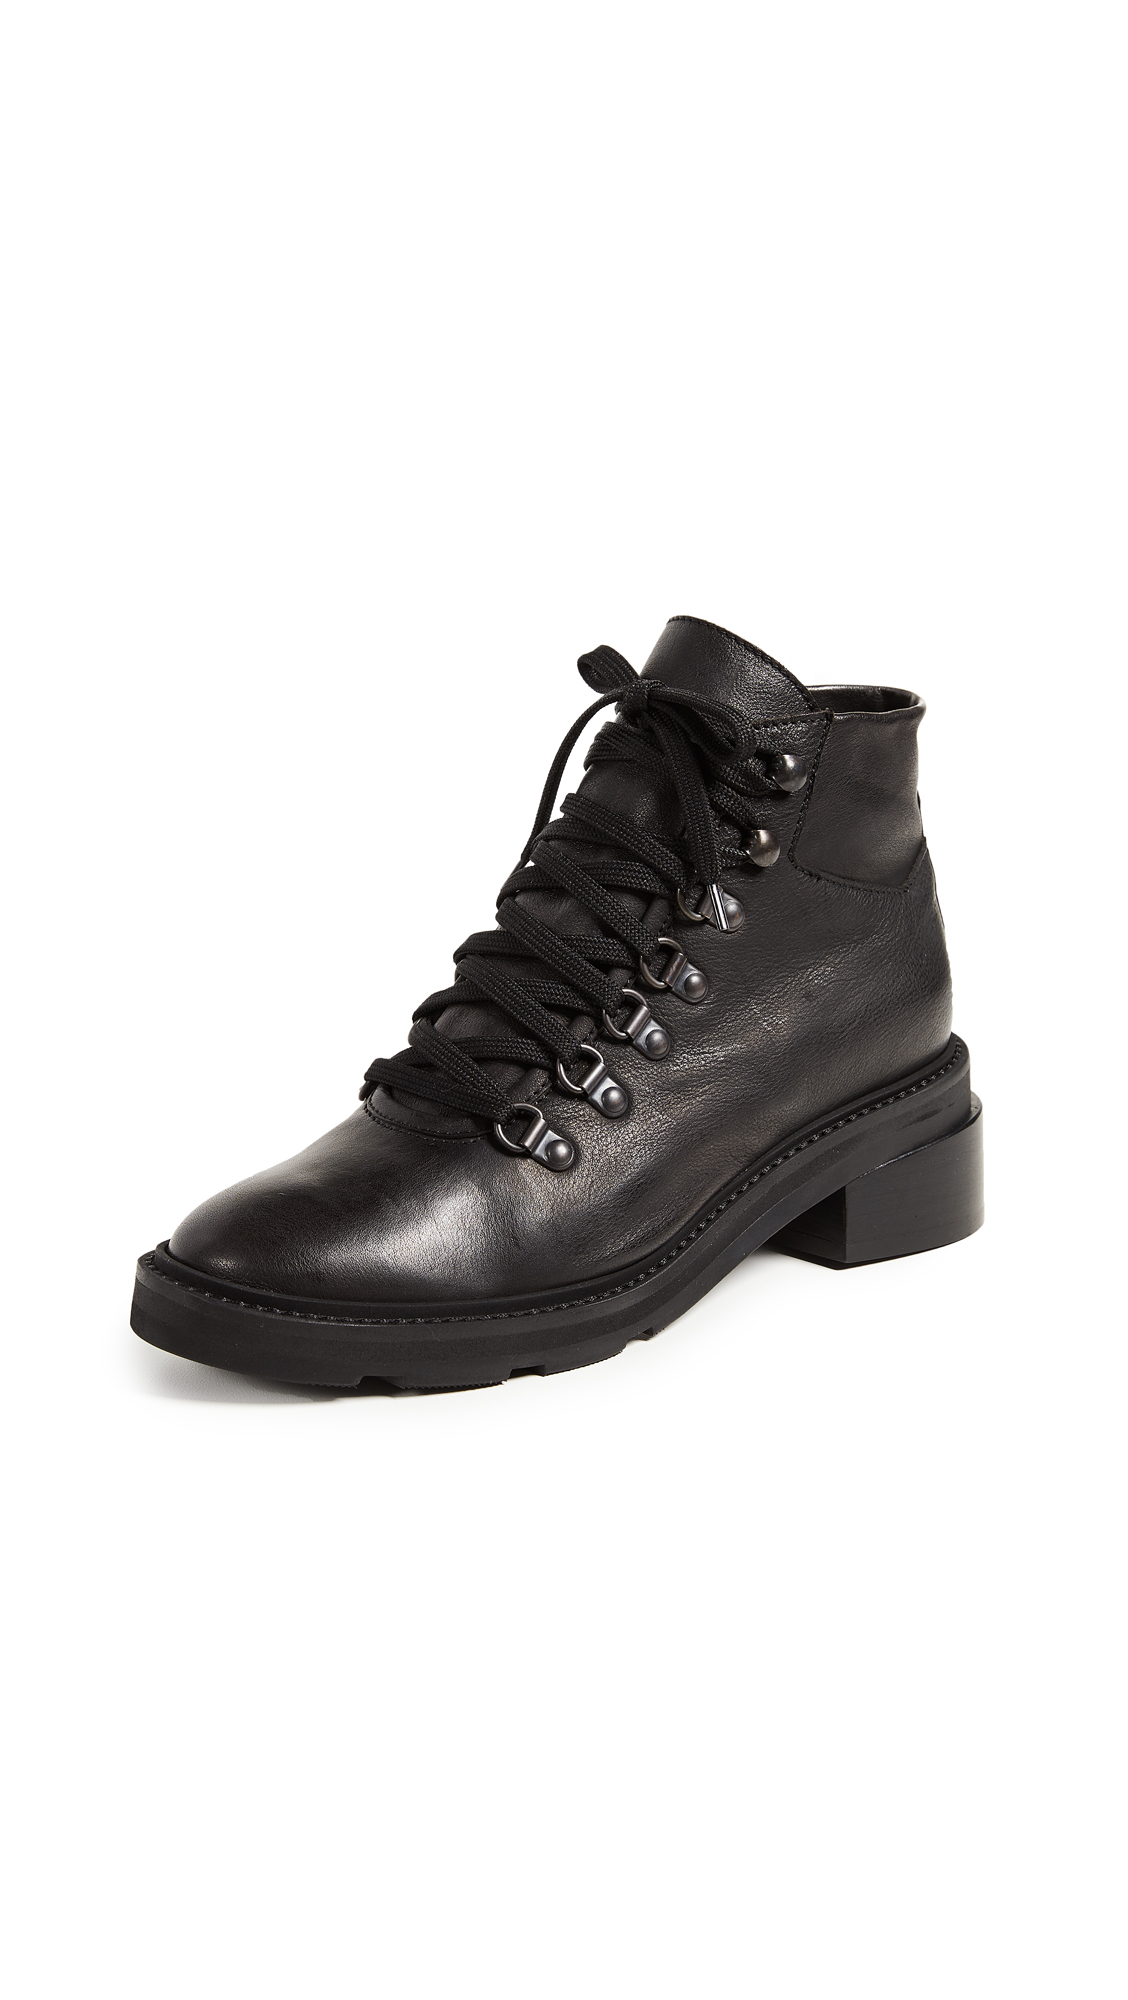 LD TUTTLE The Margin Combat Boots in Black